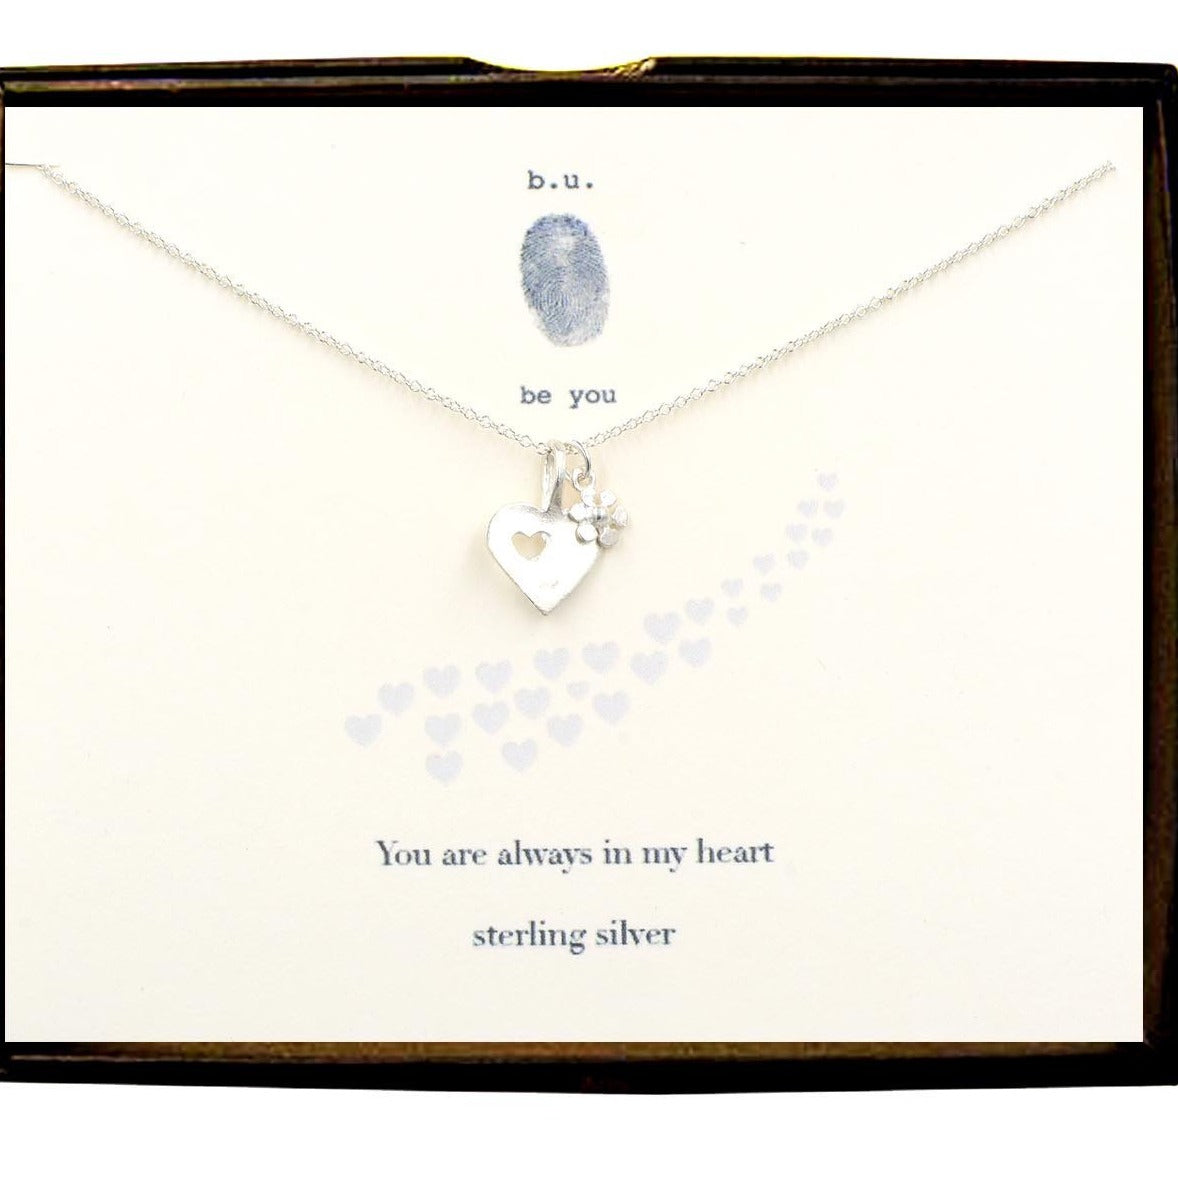 BU N06B YOU ARE ALWAYS IN MY HEART NECKLACE